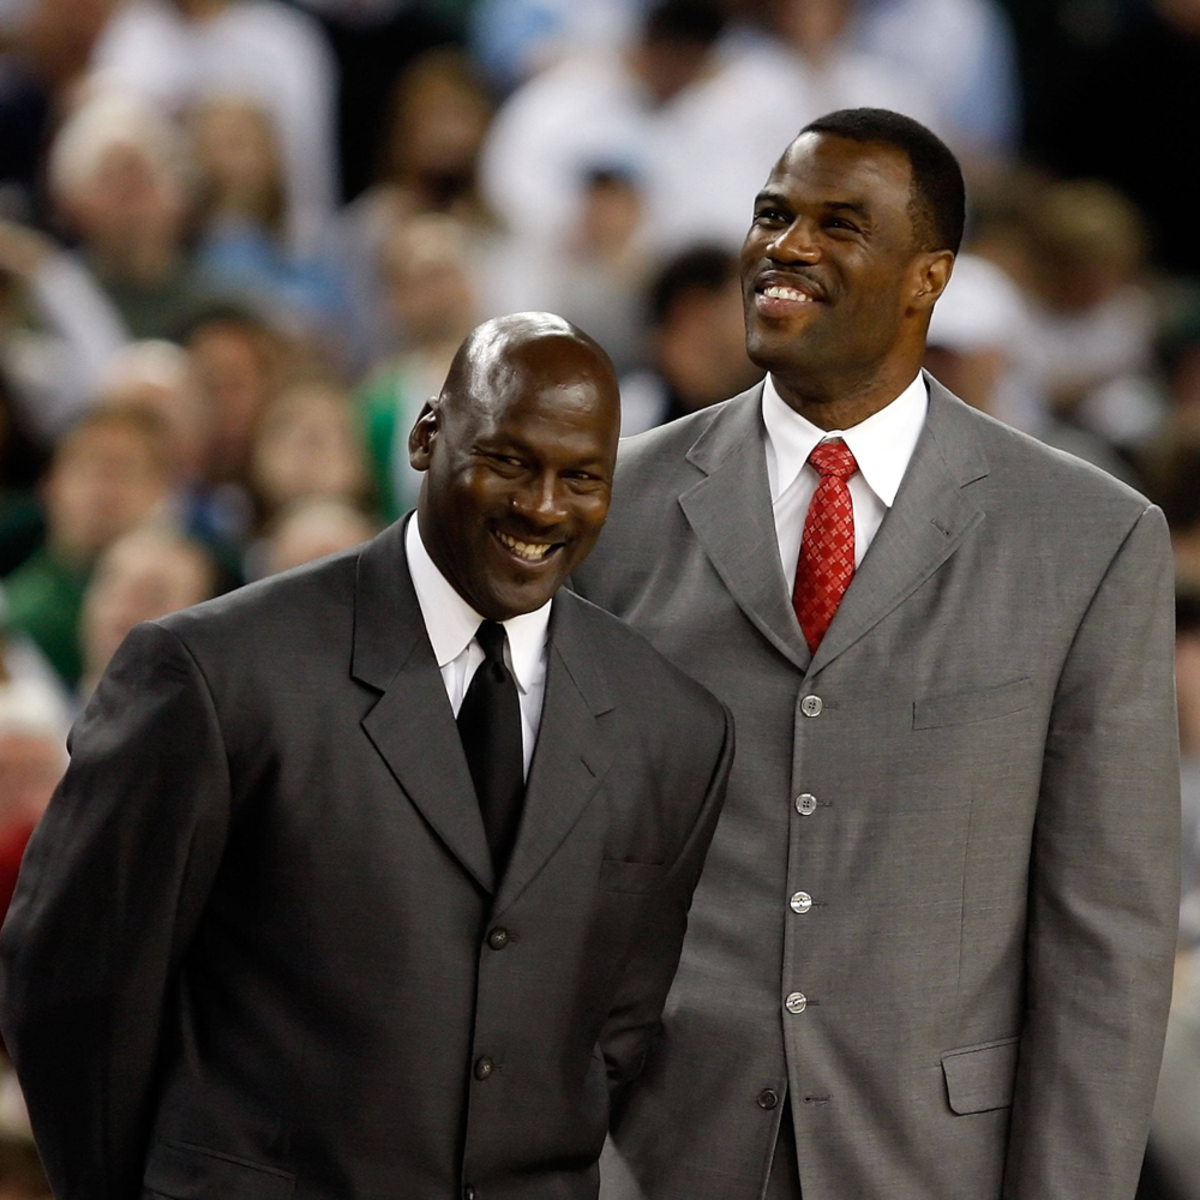 David Robinson and Michael Jordan having a great time back in the court.